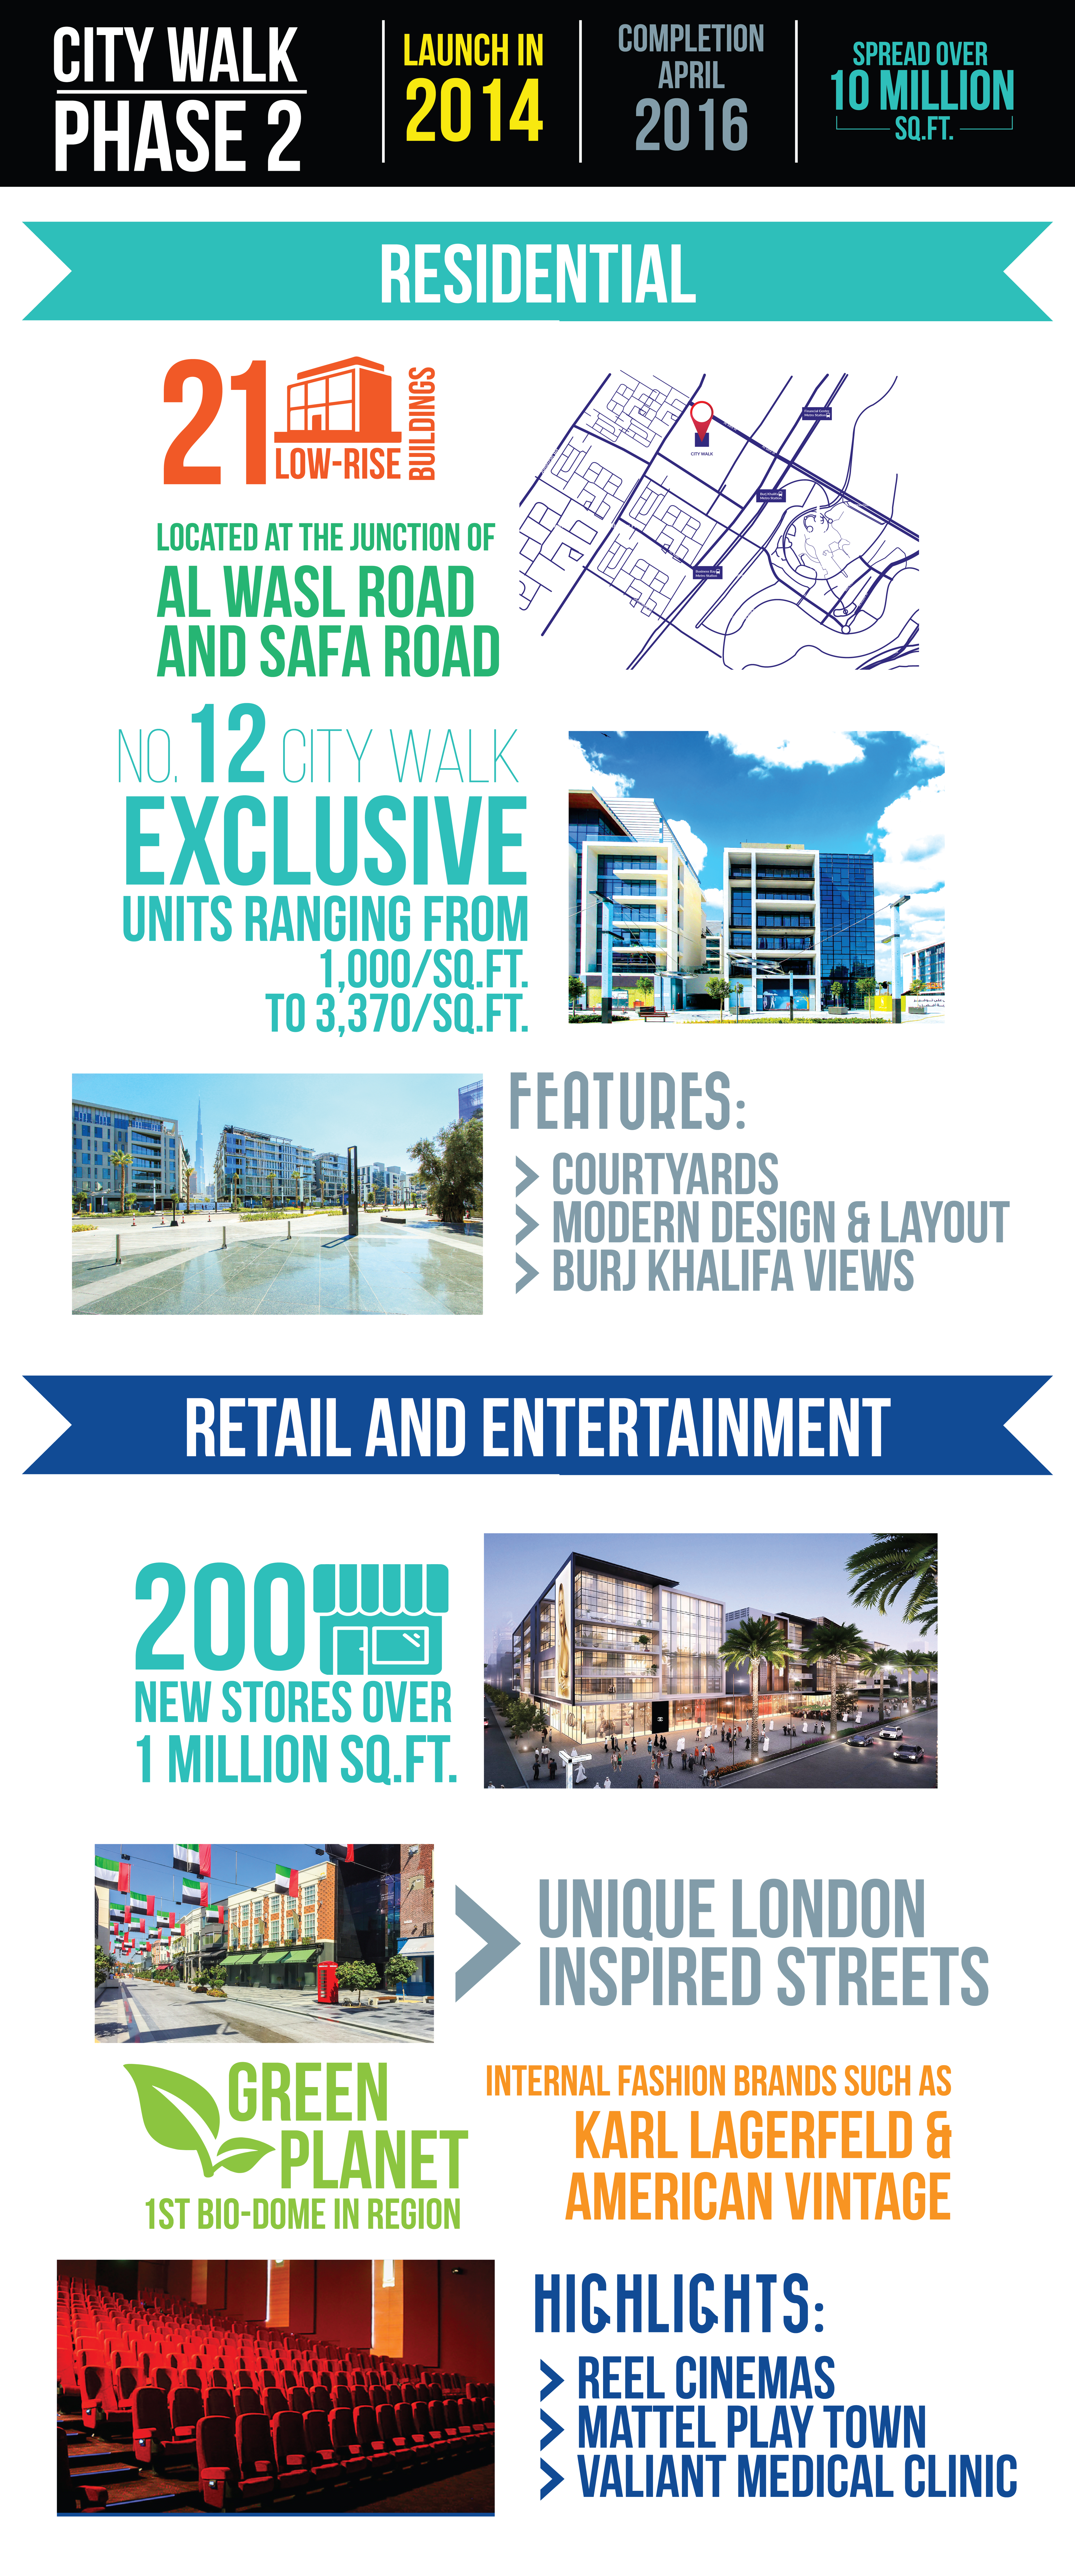 INFOGRAPHIC: Citywalk Phase 2